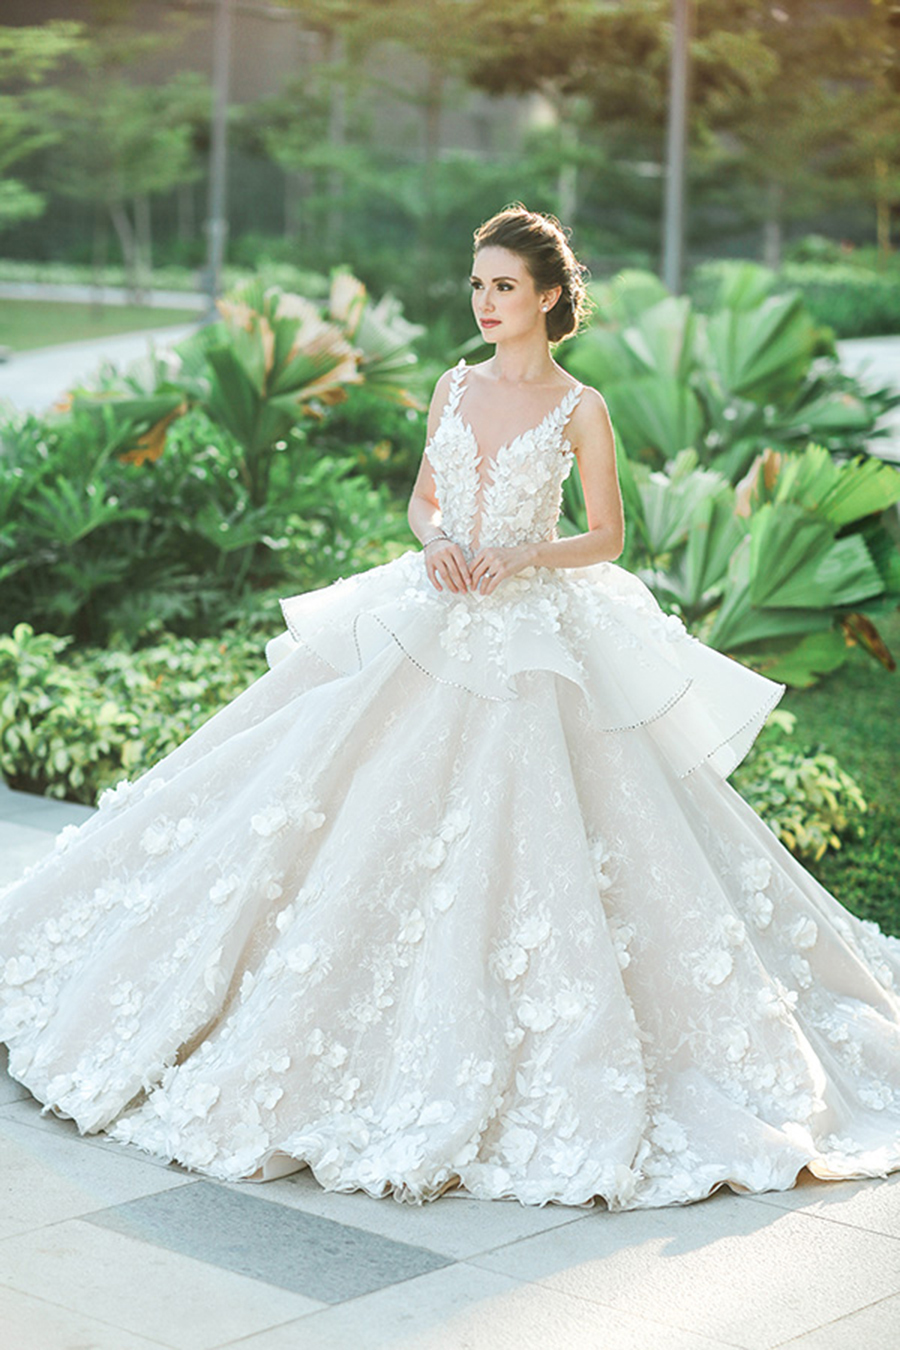 Filipino Wedding Gown Designs